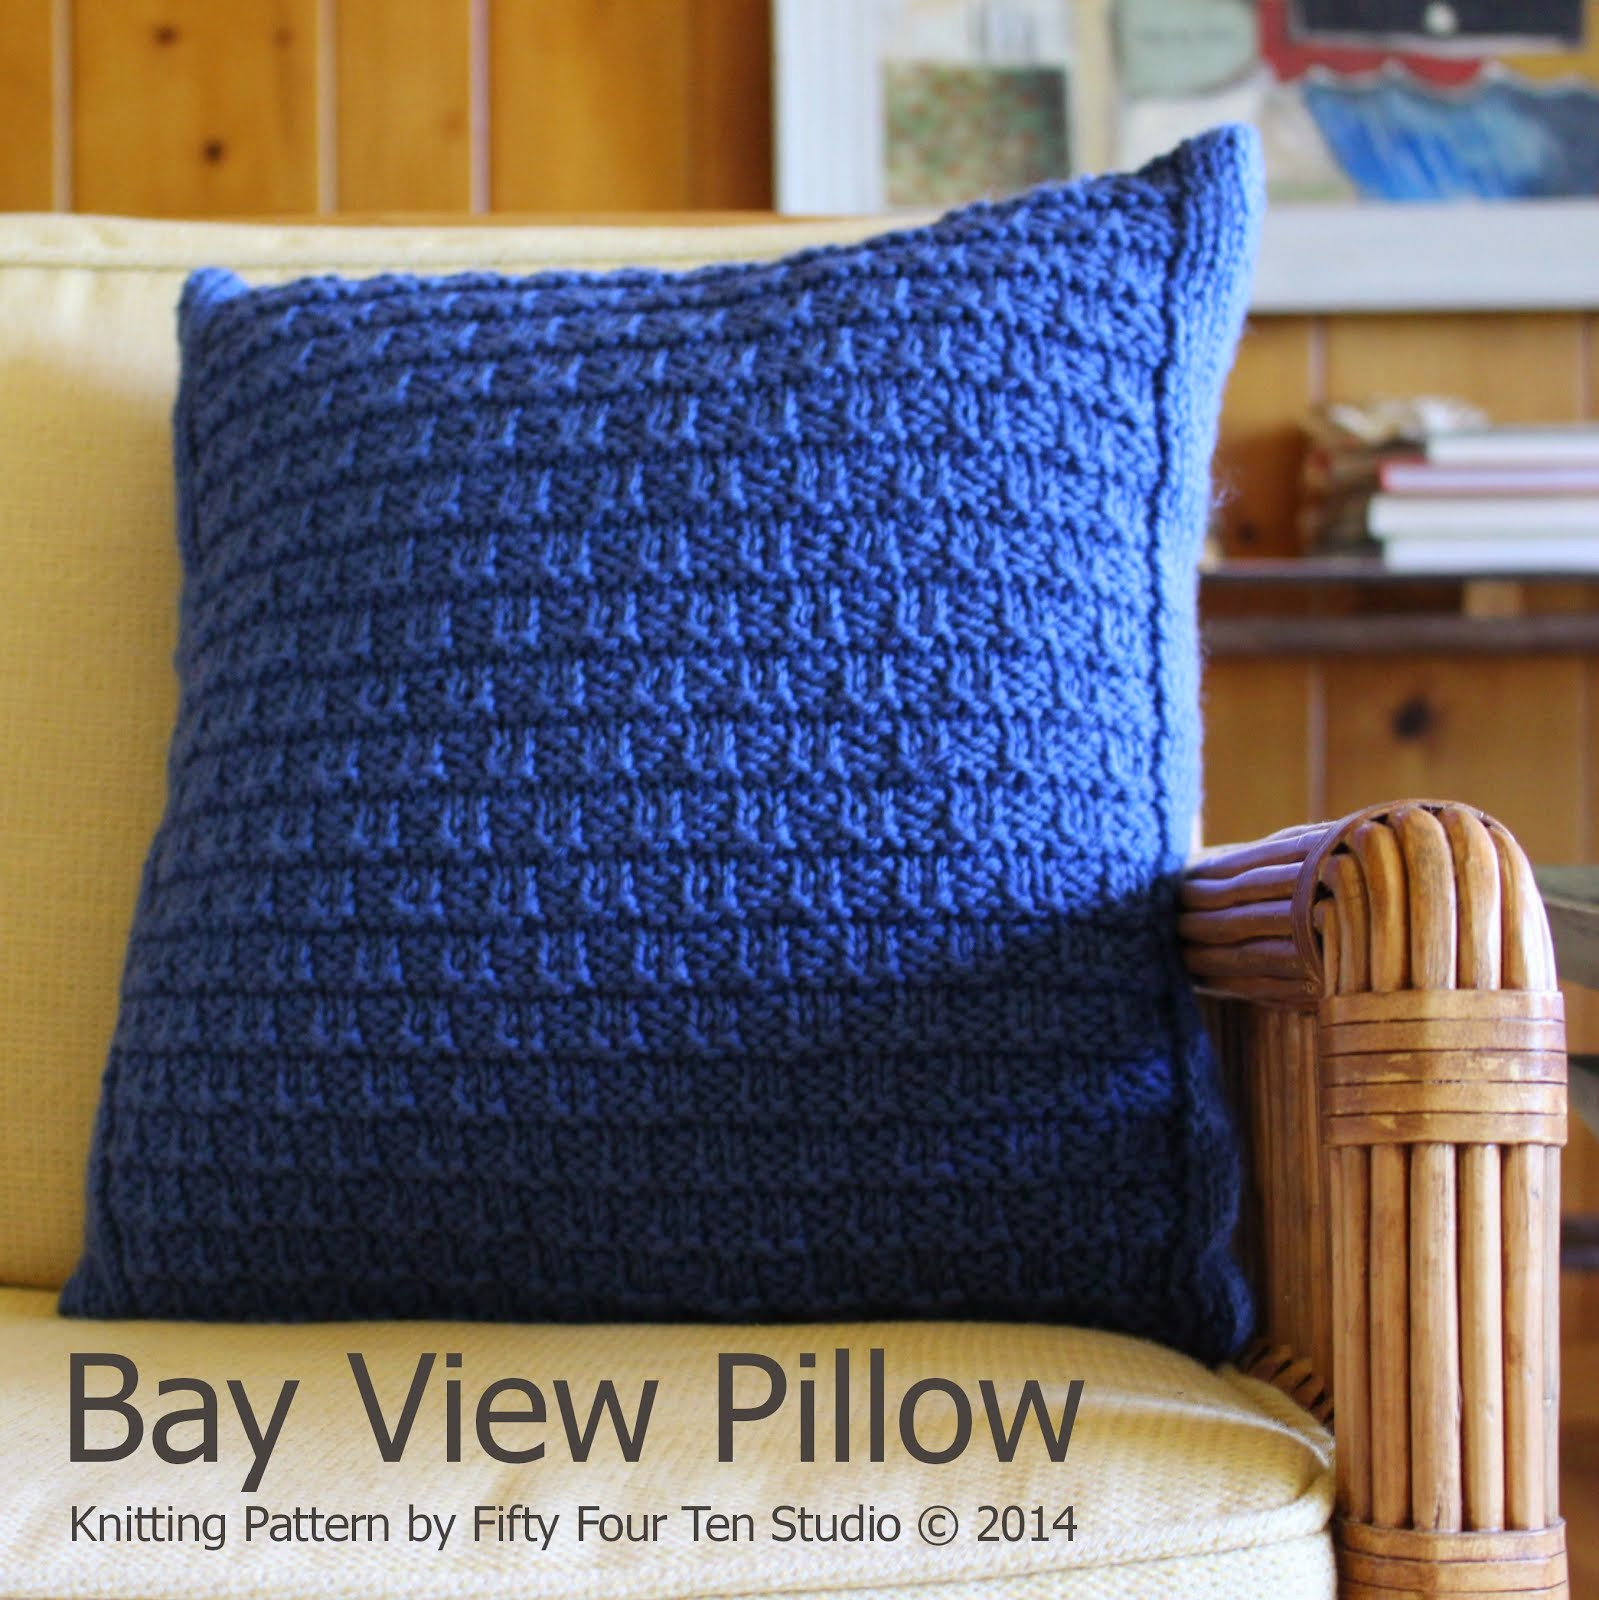 Bay View Pillow